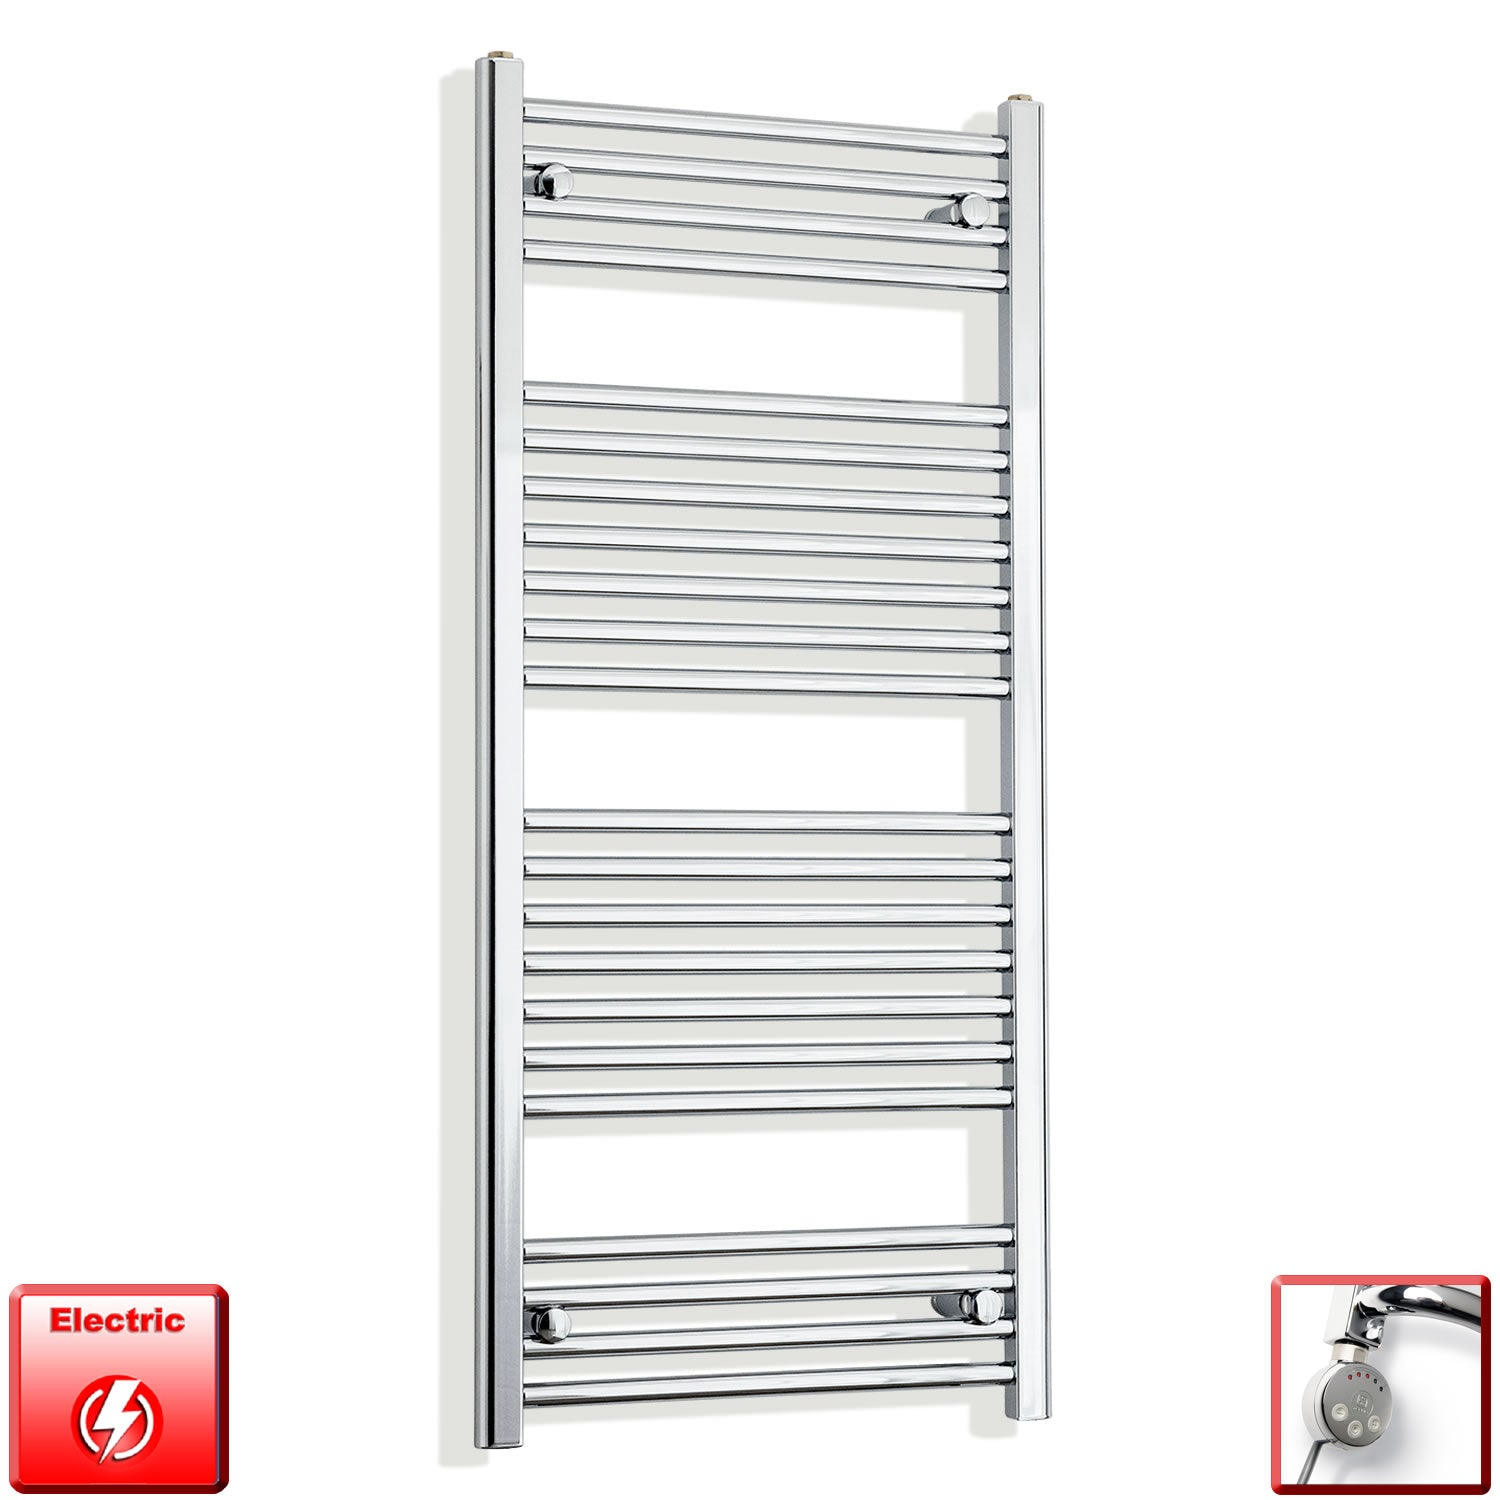 600mm Wide 1200mm High Pre-Filled Chrome Electric Towel Rail Radiator With Thermostatic MEG Element